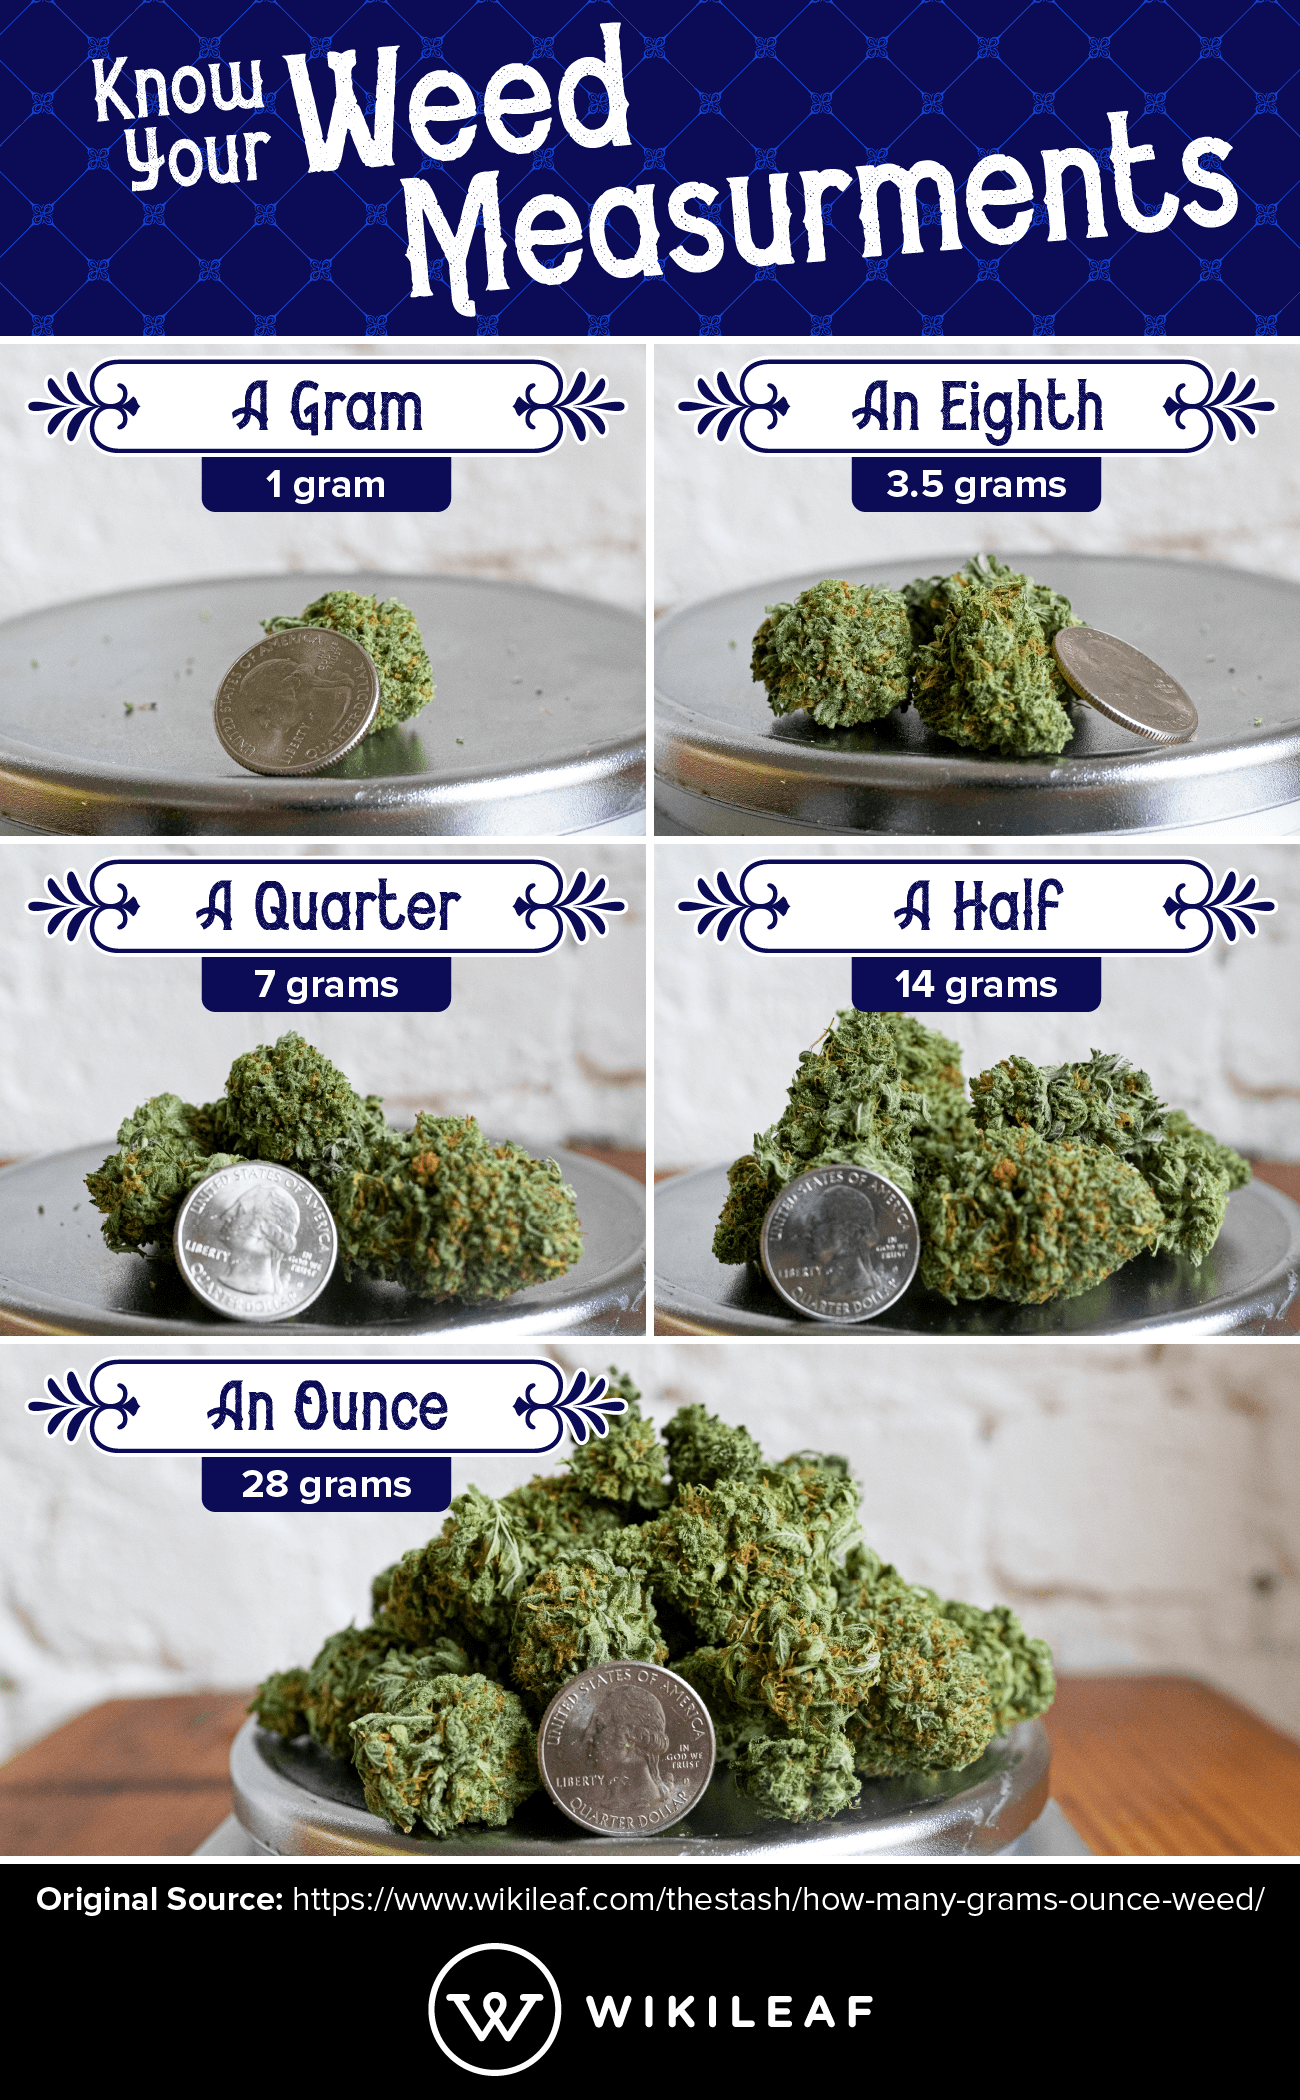 weed measurements displayed in table form